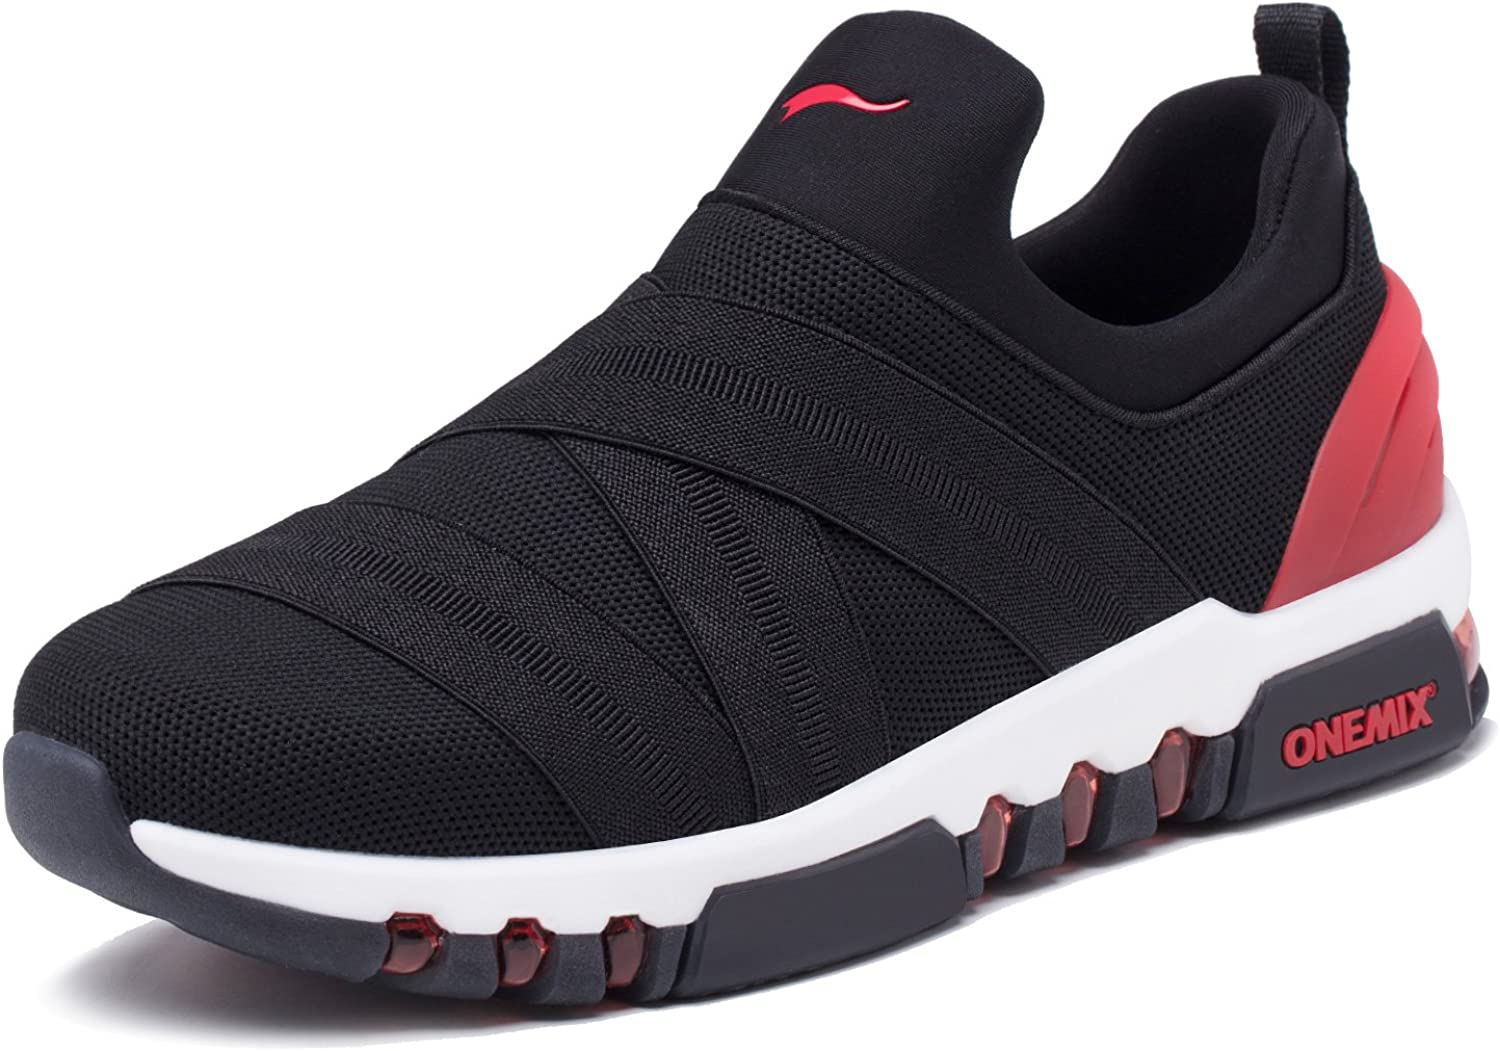 ONEMIX Mens Fashion Sneakers Walking shoes Air Cushion Breathable shoes